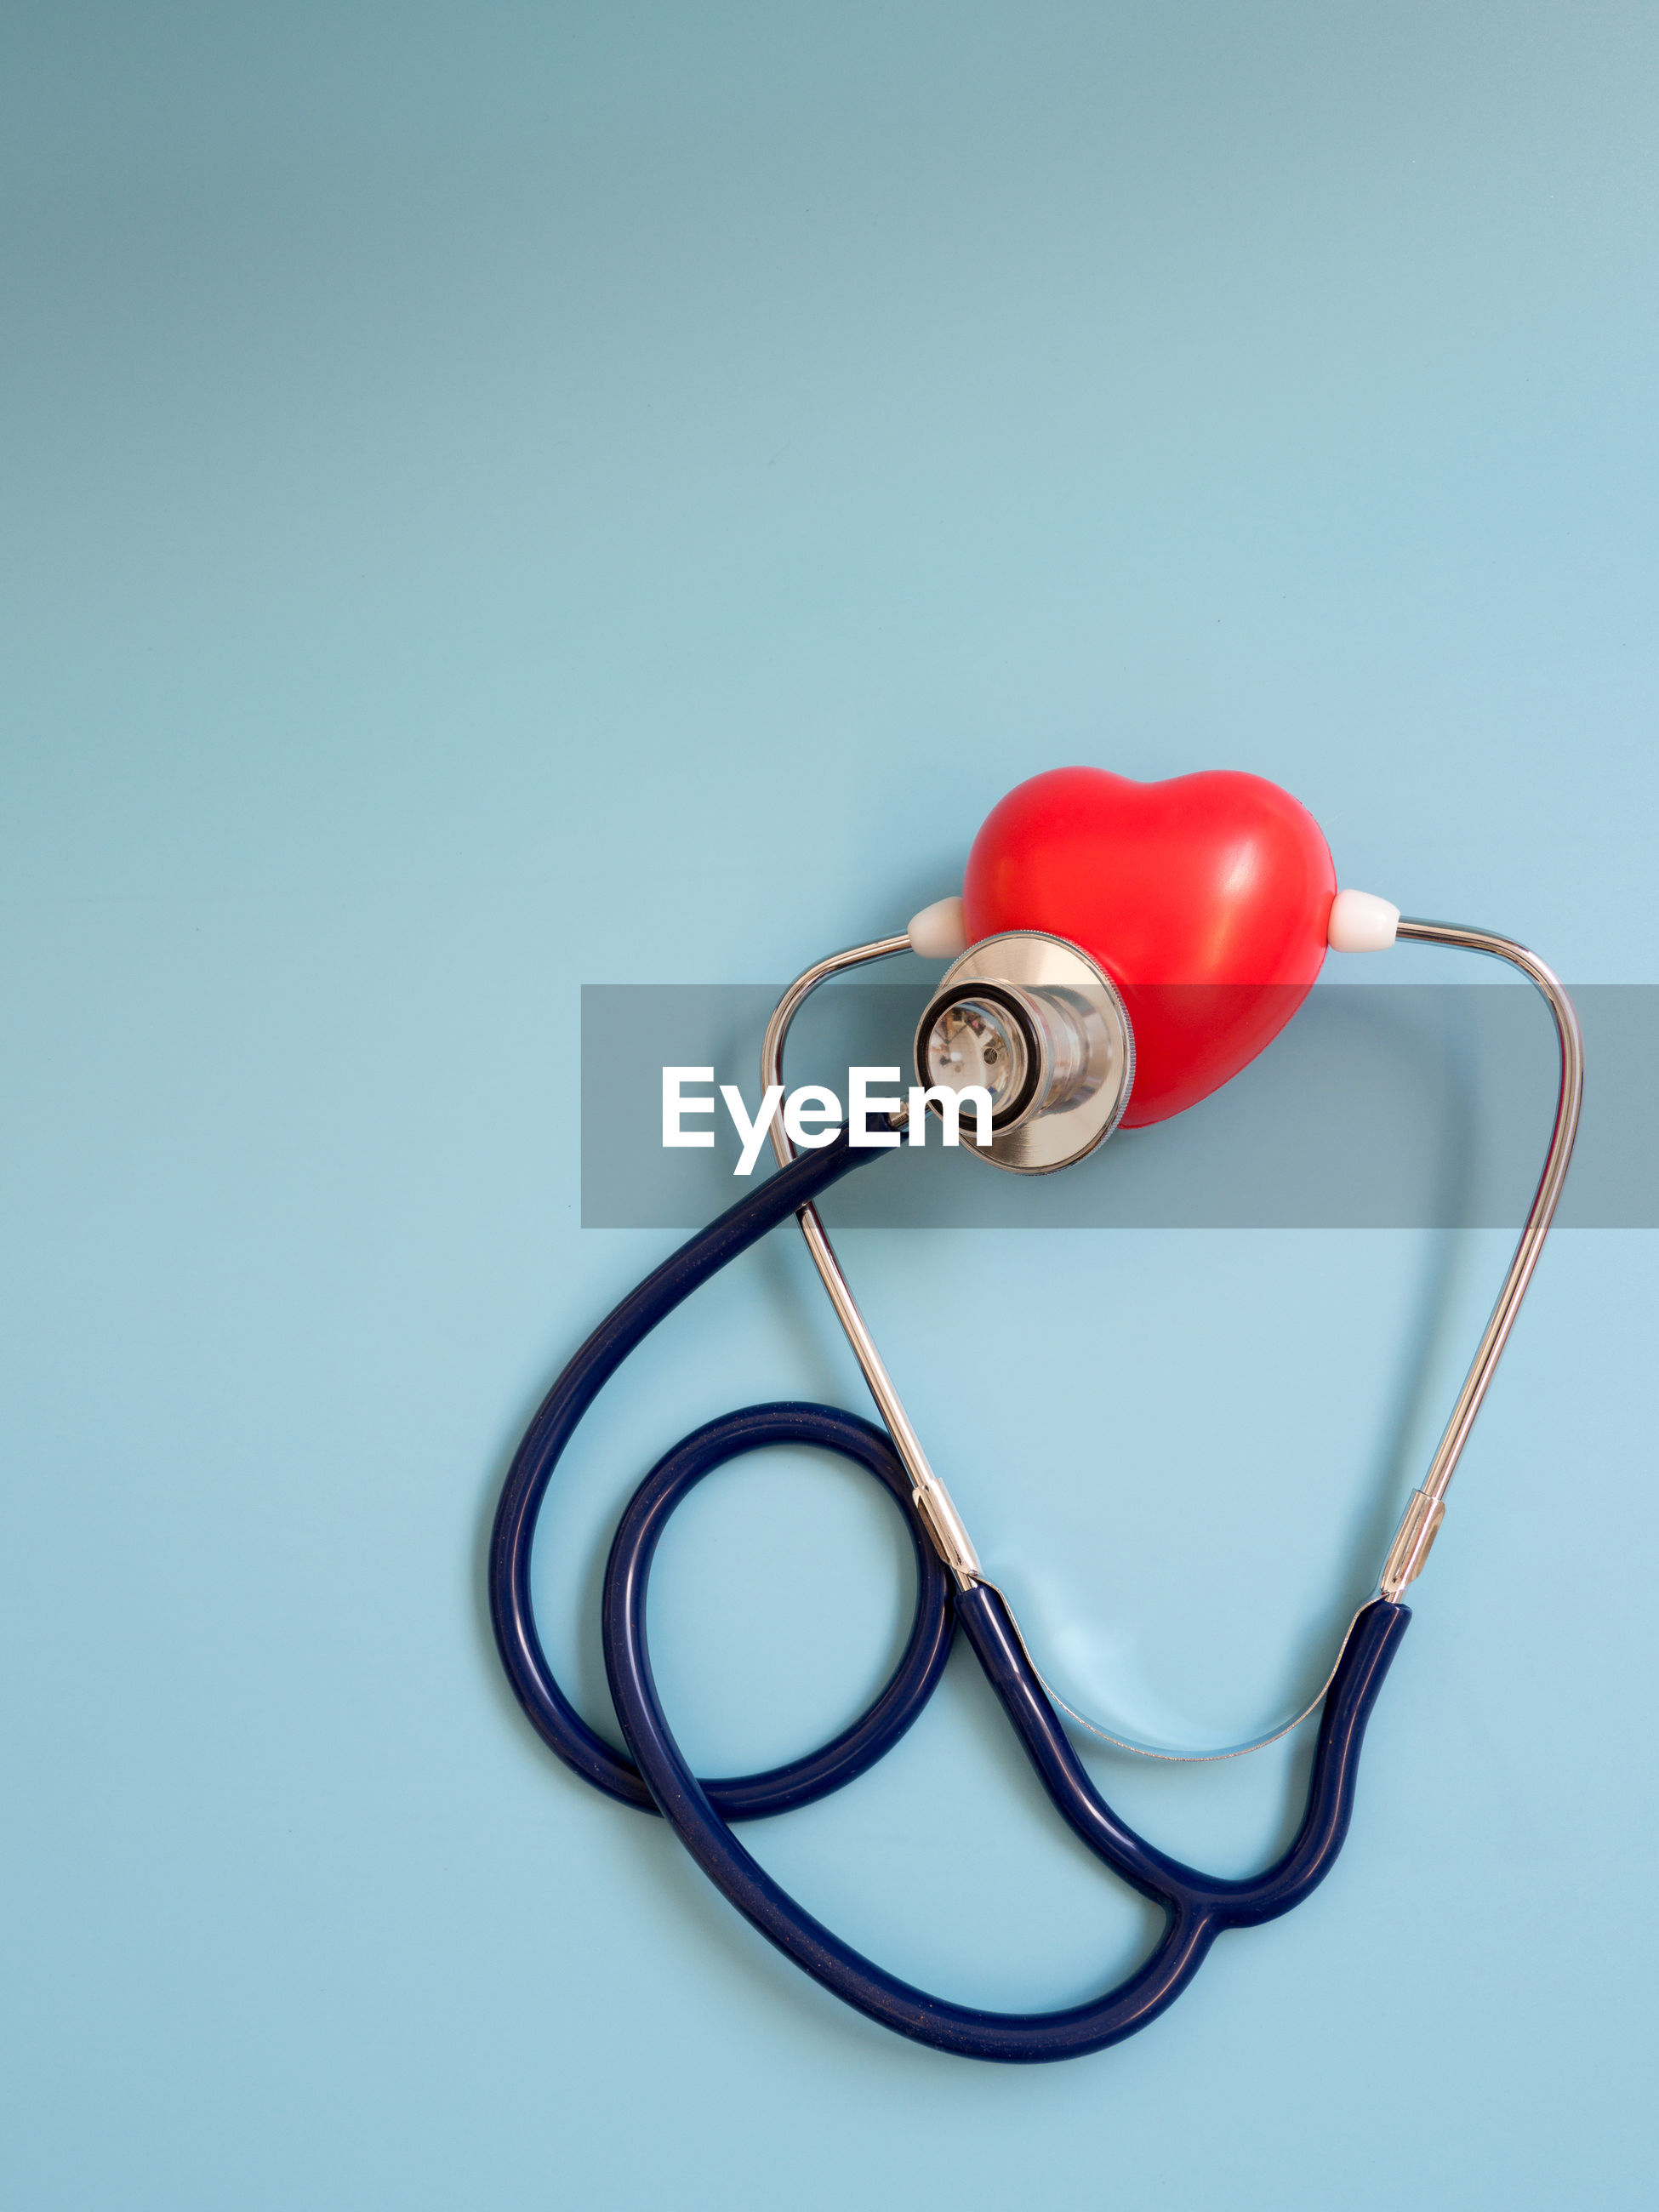 Stethoscope against blue background